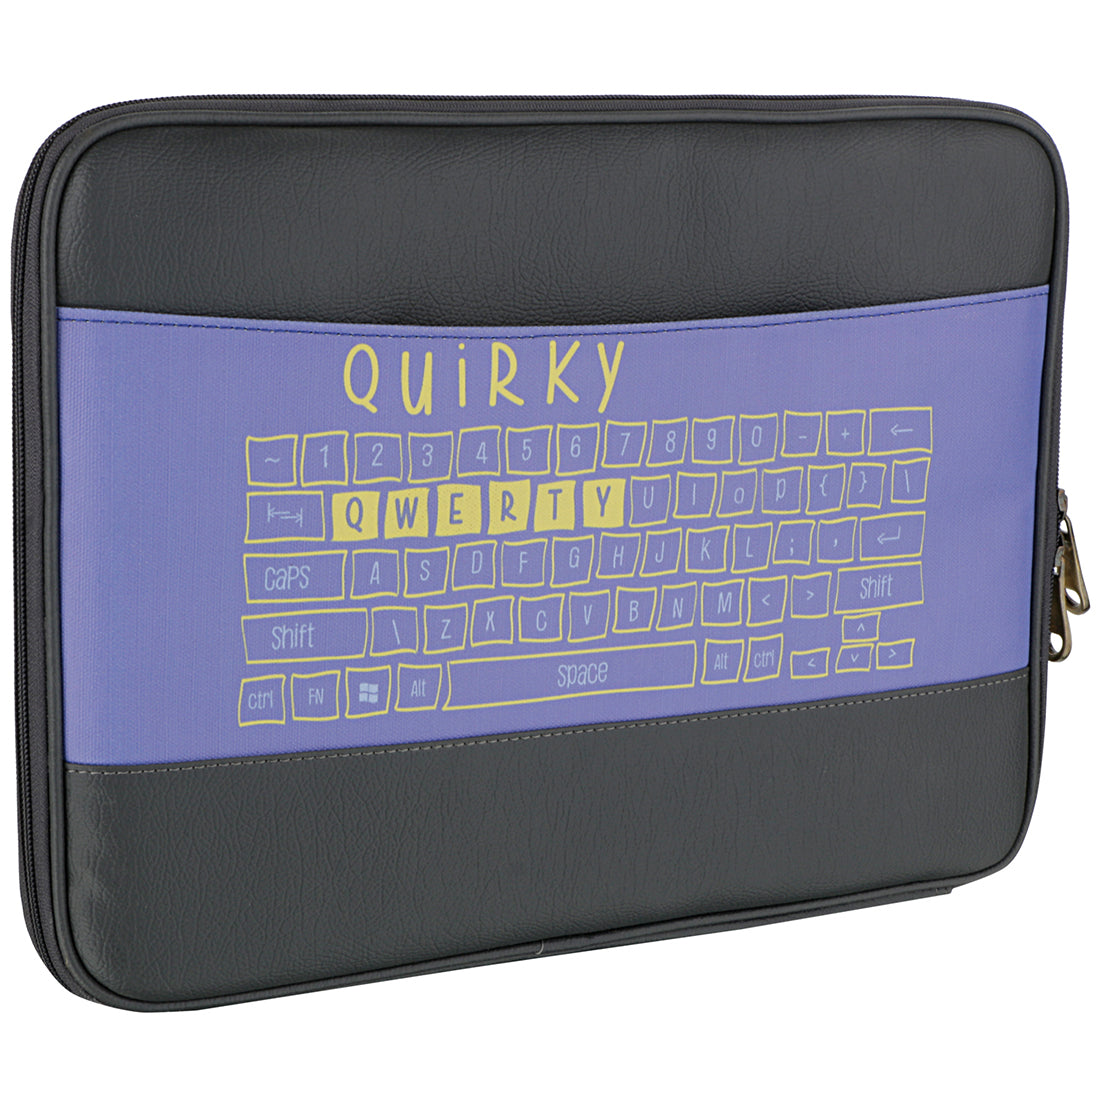 Quirky Qwerty Laptop Sleeve